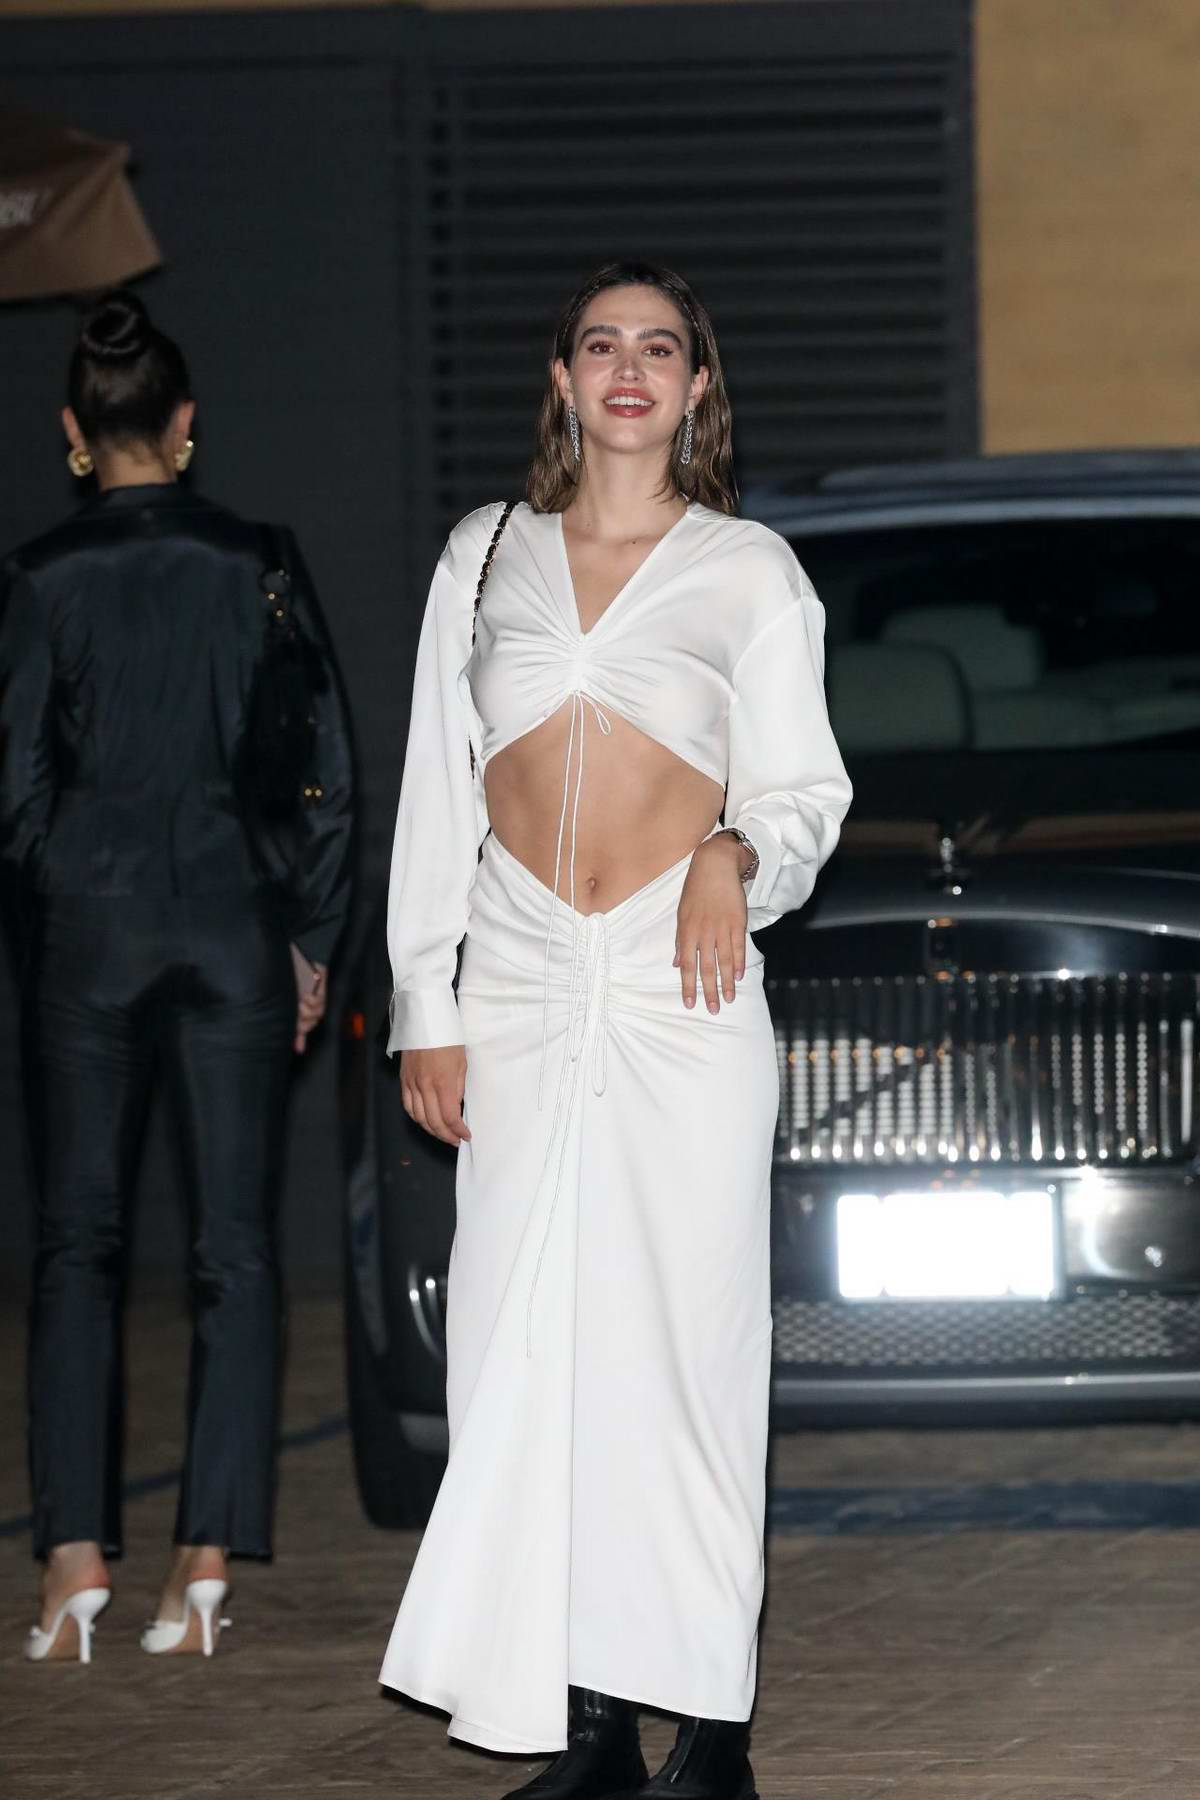 Amelia Hamlin looks amazing in a white ensemble while out for dinner with friends at Nobu in Malibu, California